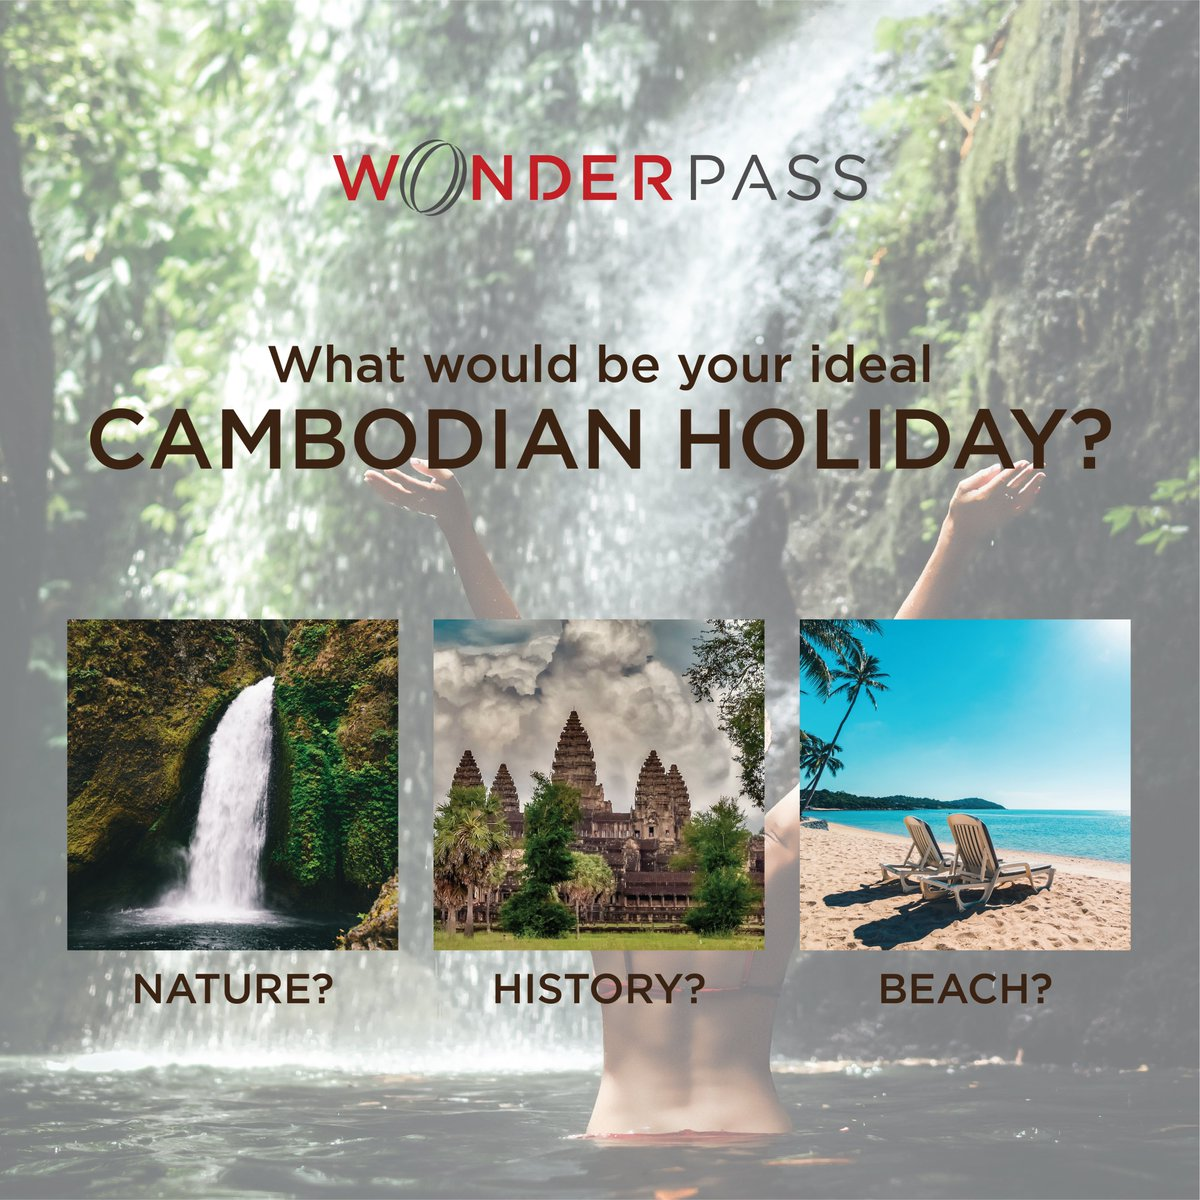 IMAGINE... it's some time in the future... you arrive in Cambodia on a fun-loving holiday... What is the first kind of experience you'd like to have? 🤔 Nature escape? 🌿 Angkor Wat historical adventure? 🌄 Or paradise beach? 🏖️  #Wonderpass #Tourism #Cambodia